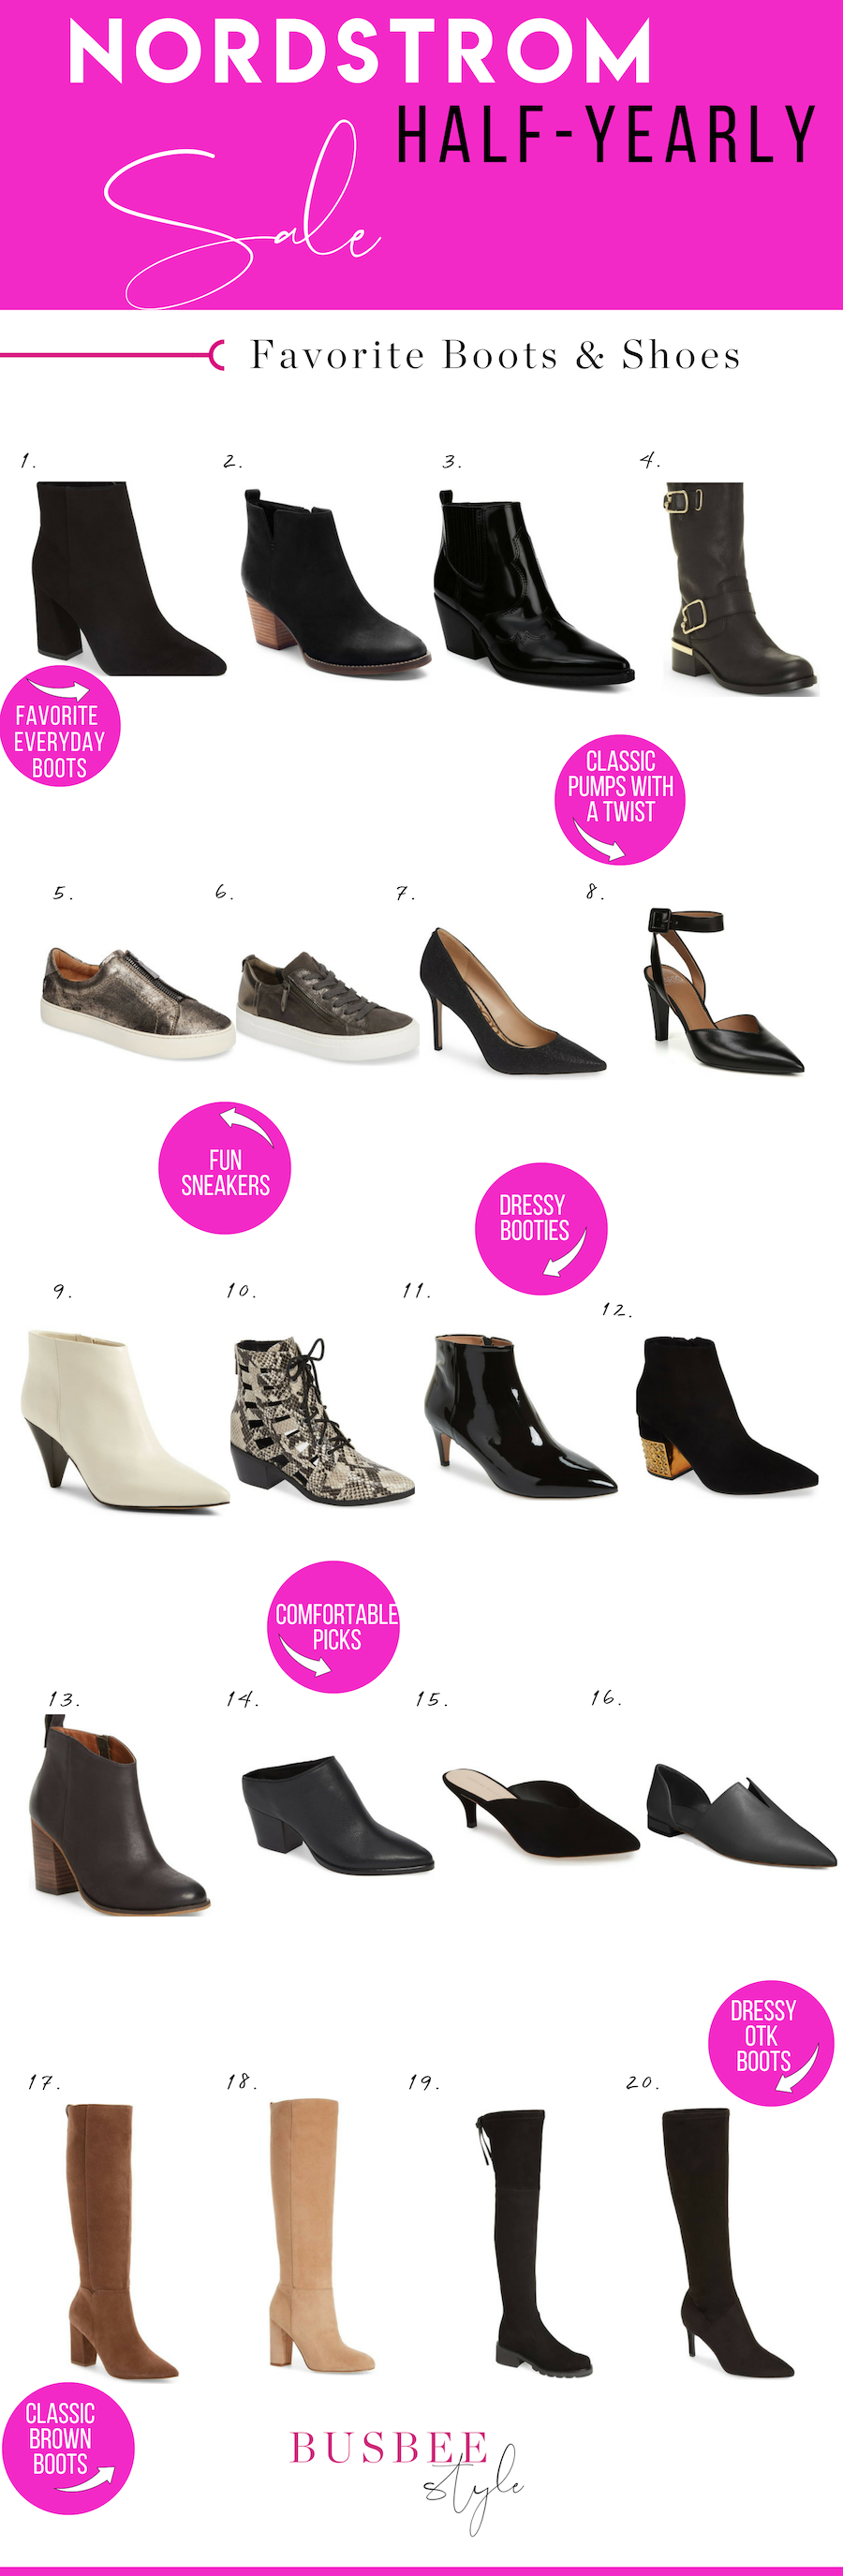 Erin Busbee of BusbeeStyle.com sharing 20 fof the best boots and shoes from the Nordstrom Half Yearly Sale of 2018